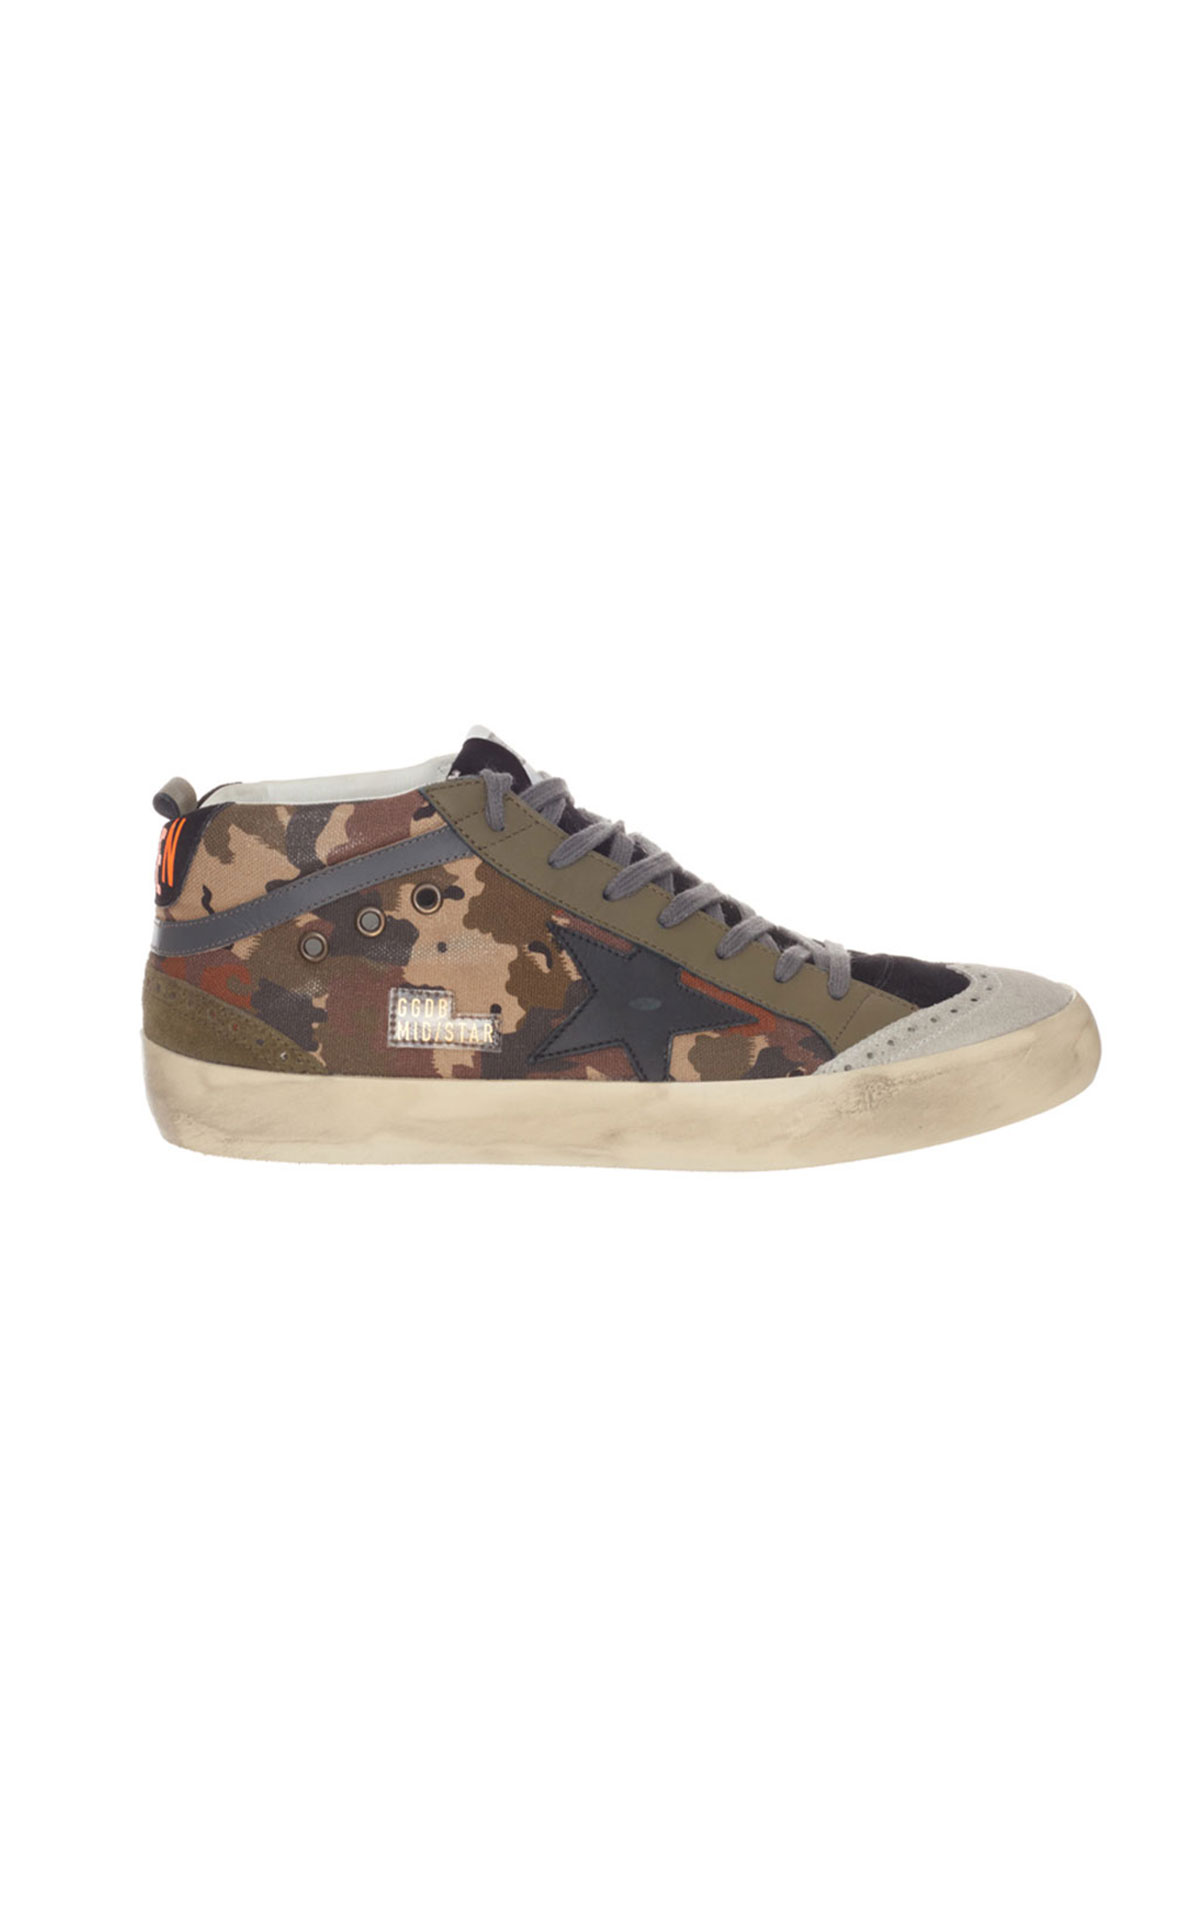 Golden Goose Camouflage canvas black star trainer from Bicester Village